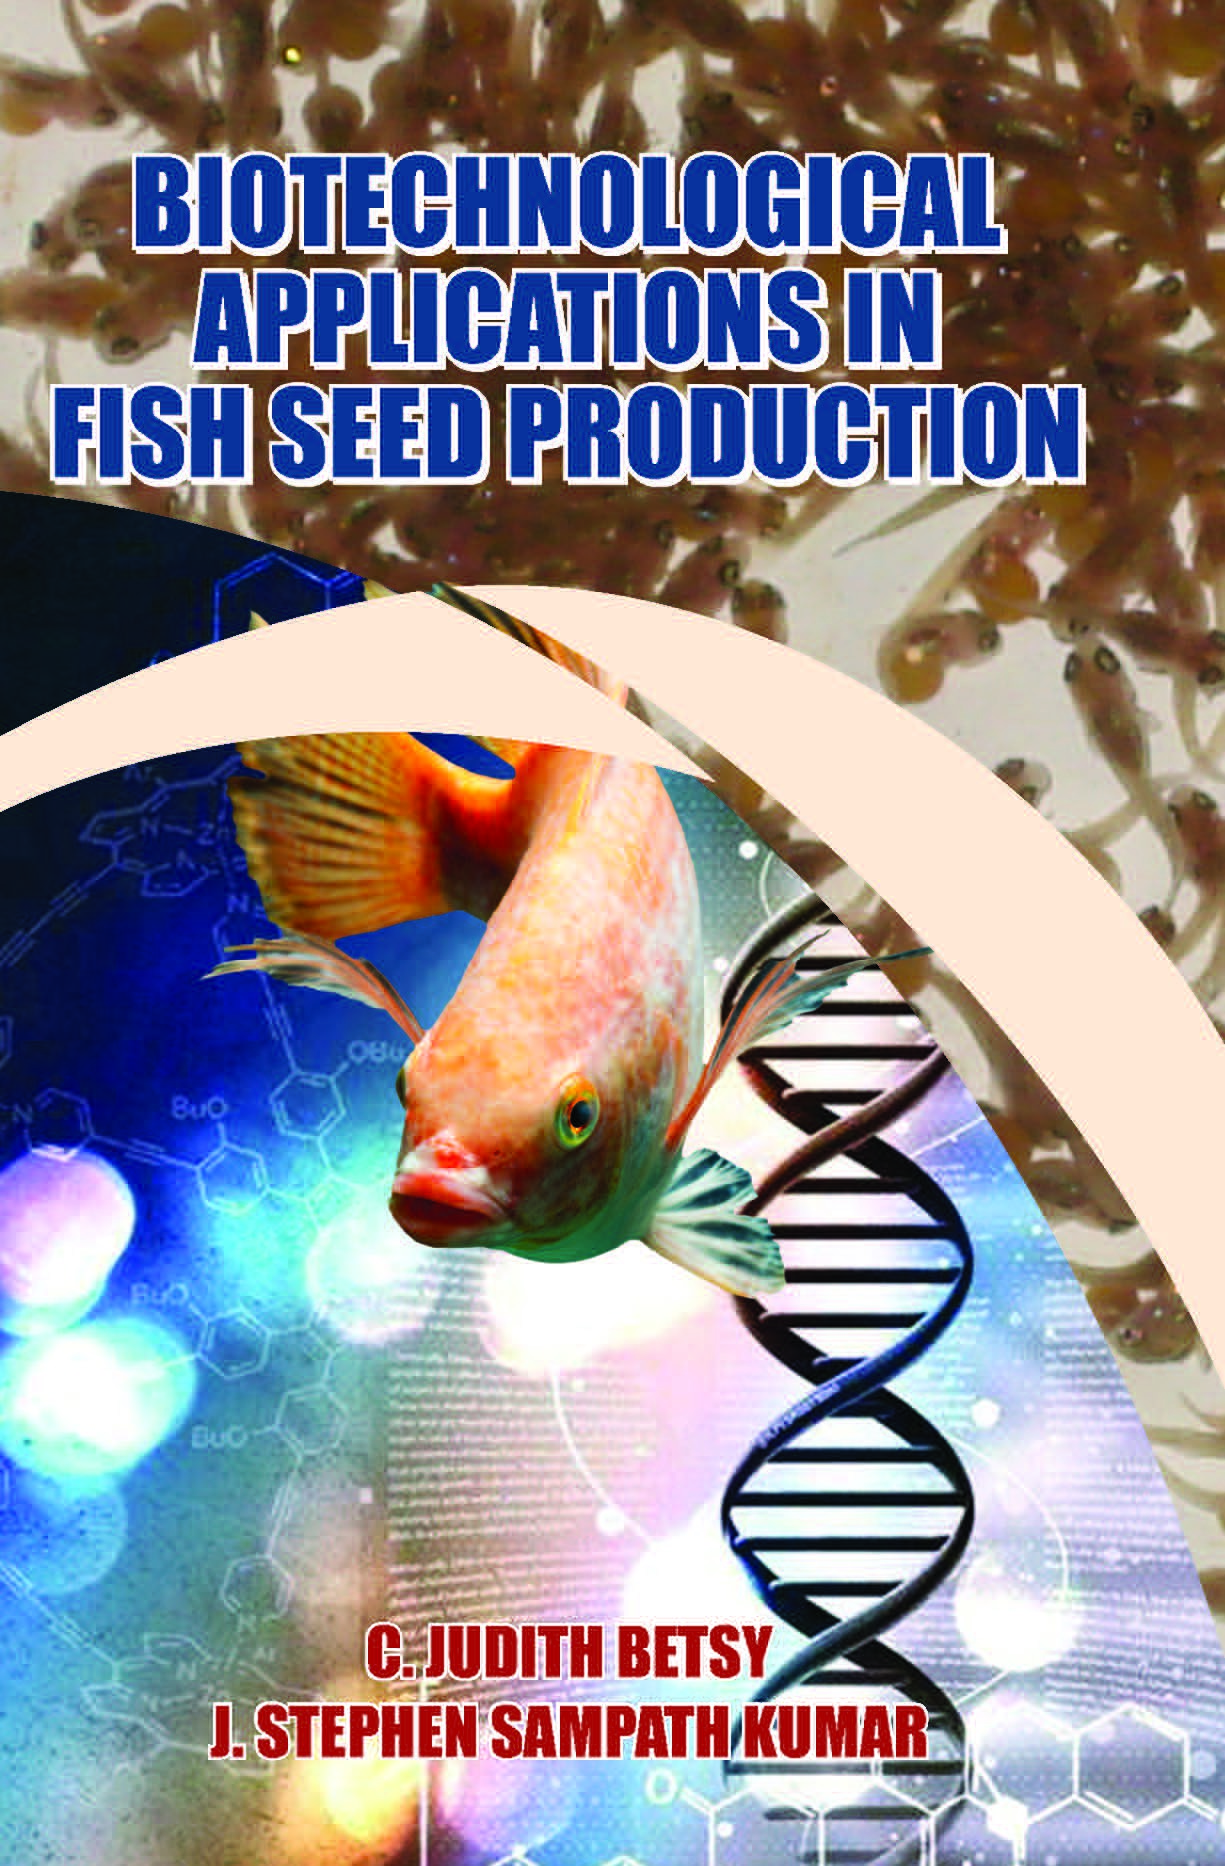 Biotechnological Applications in Fish Seed Production